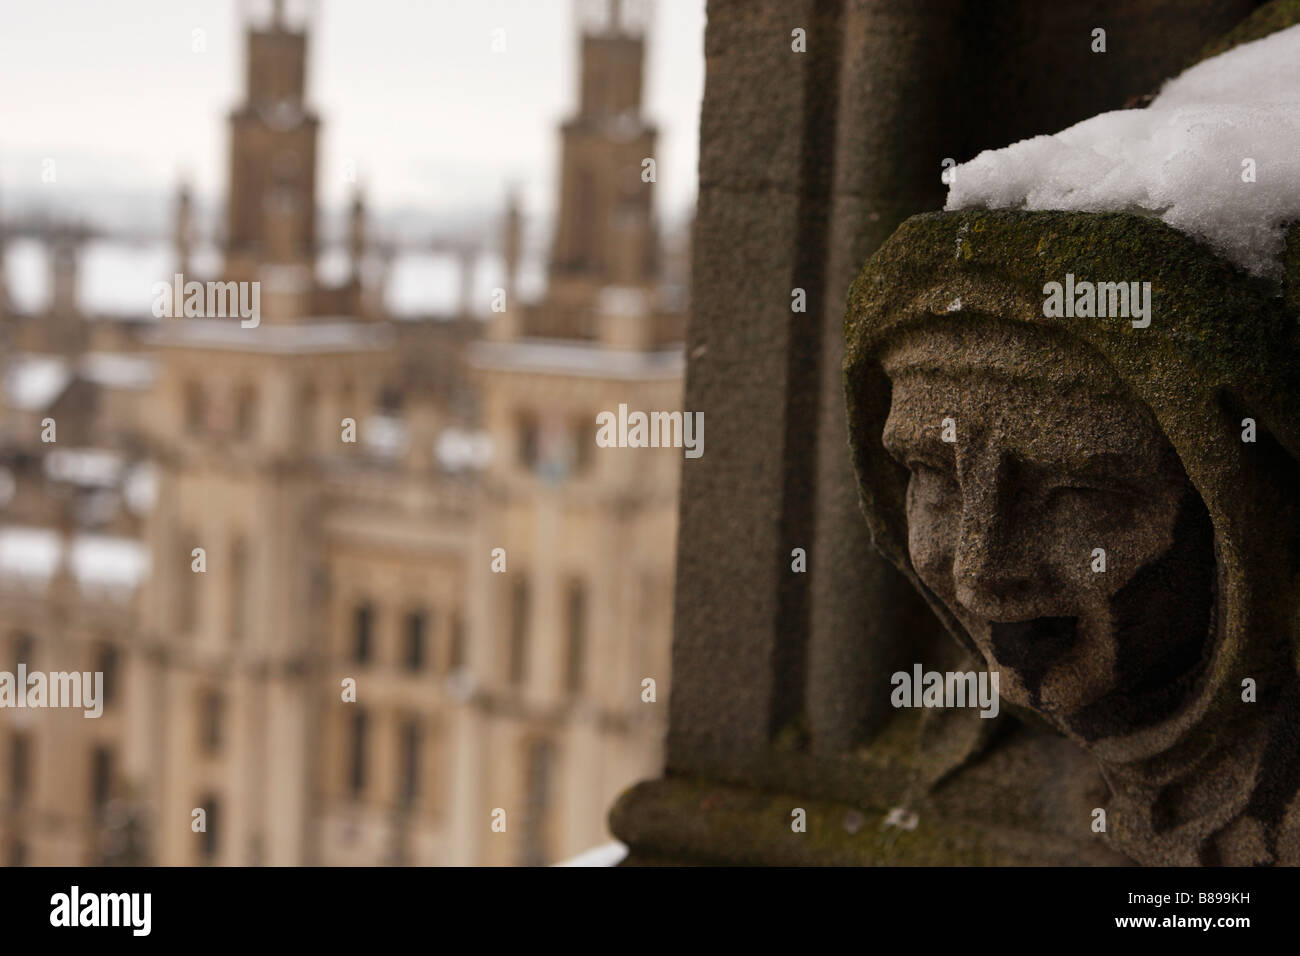 Dark souls stock photos images alamy